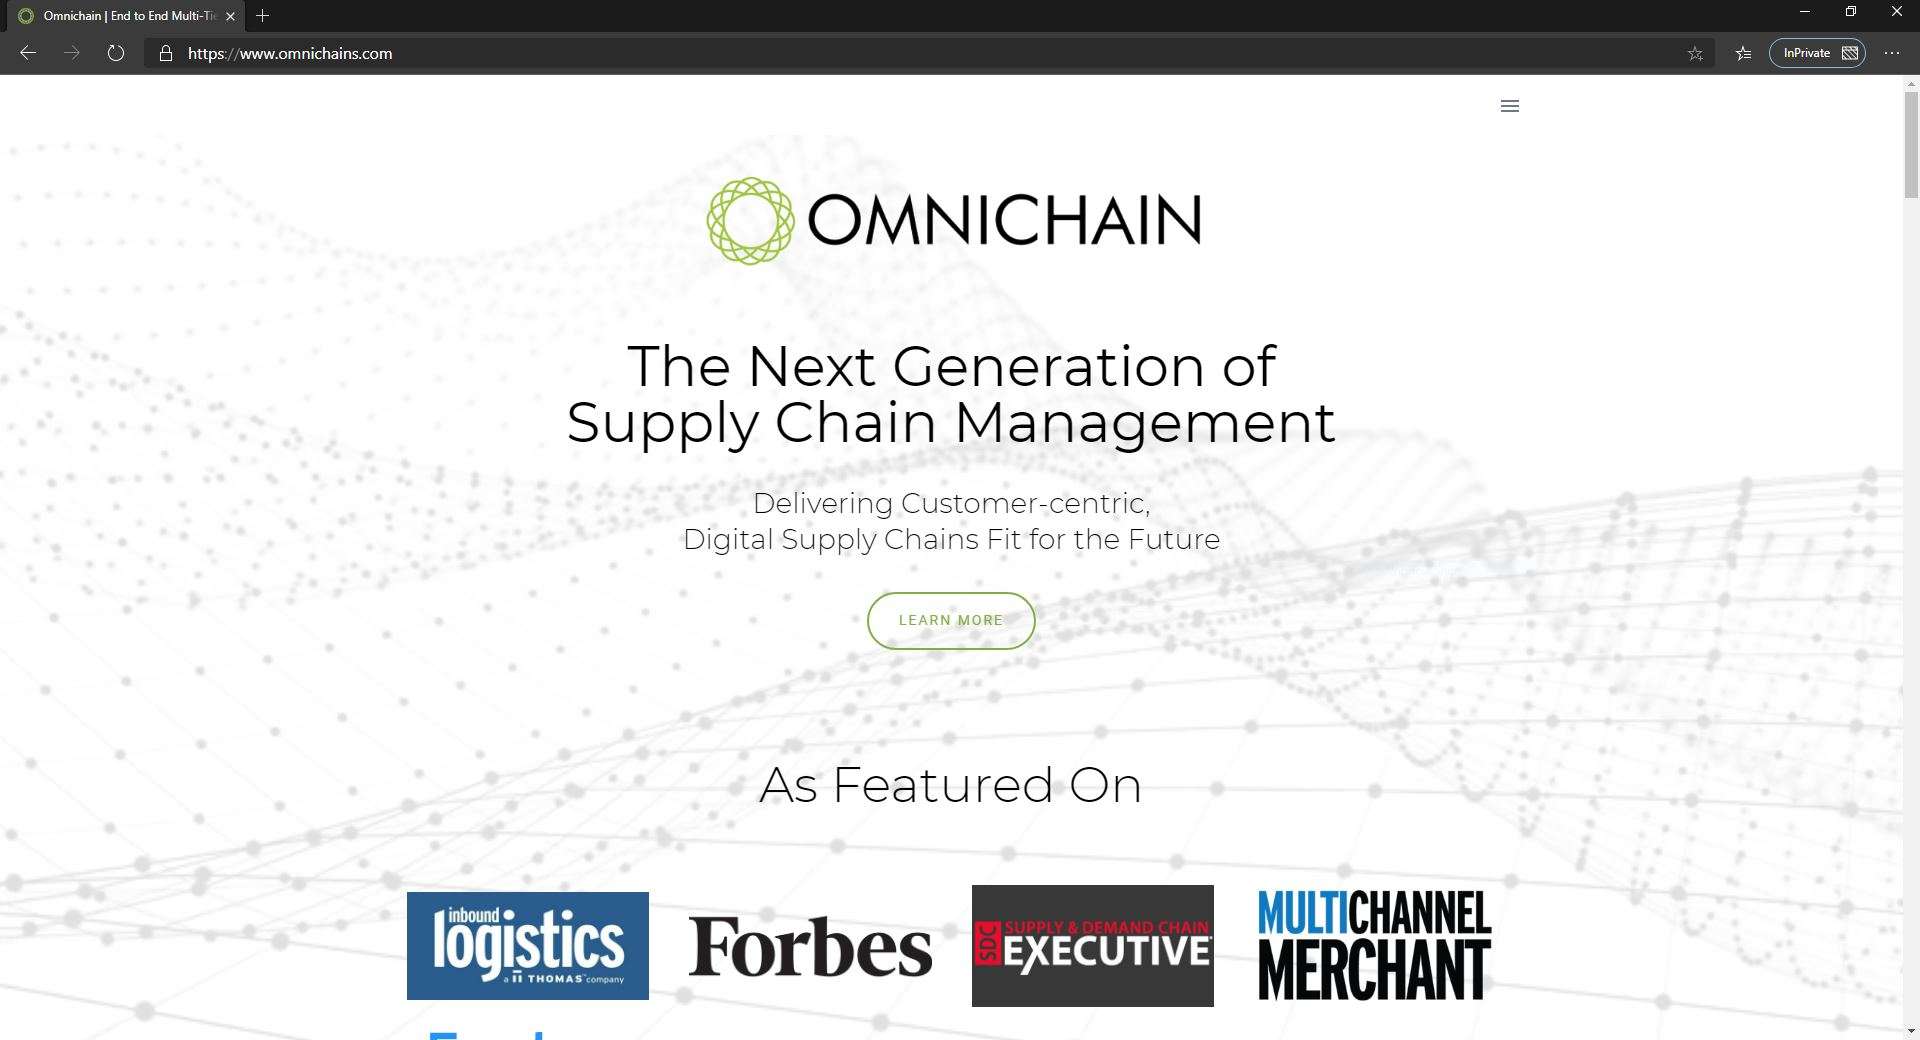 Technology Adoption Of Blockchain For Supply Chain Transparency-Omni Chains